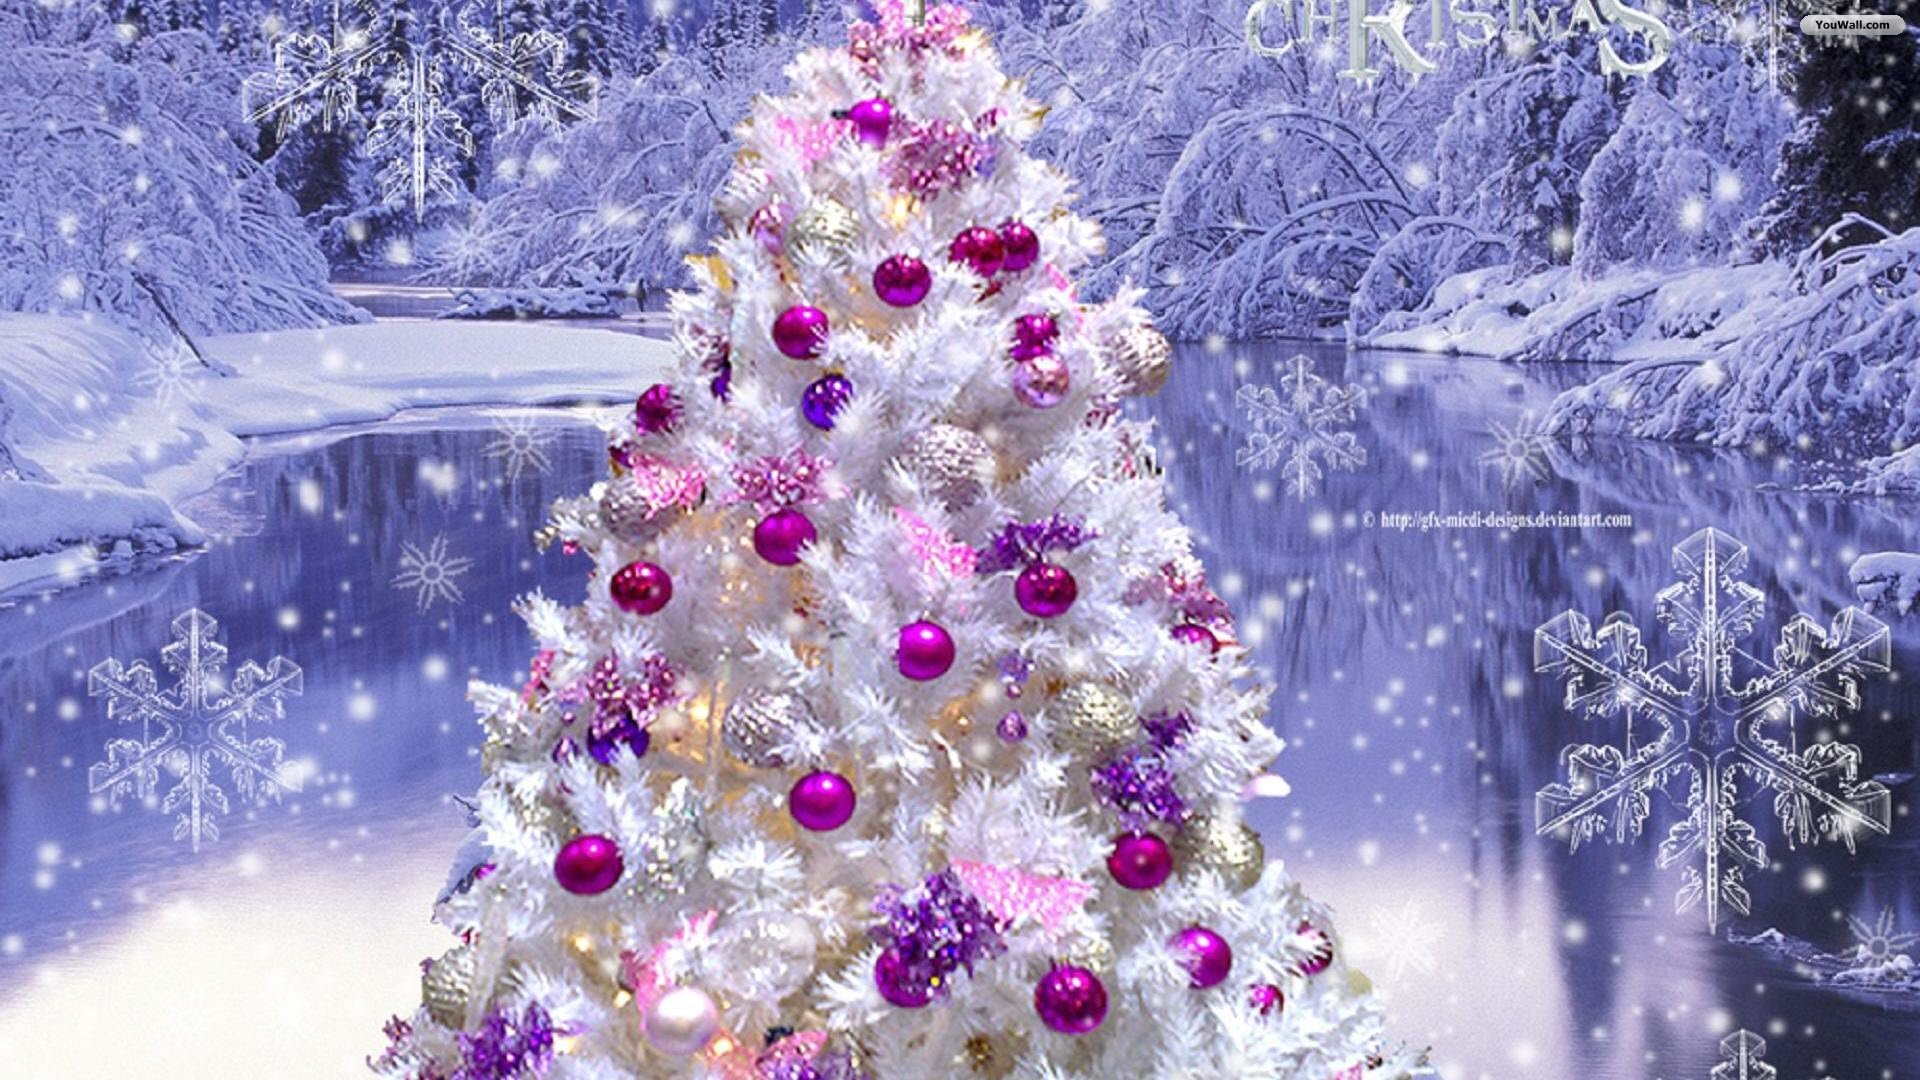 Res: 1920x1080, Christmas Tree Wallpapers High Quality